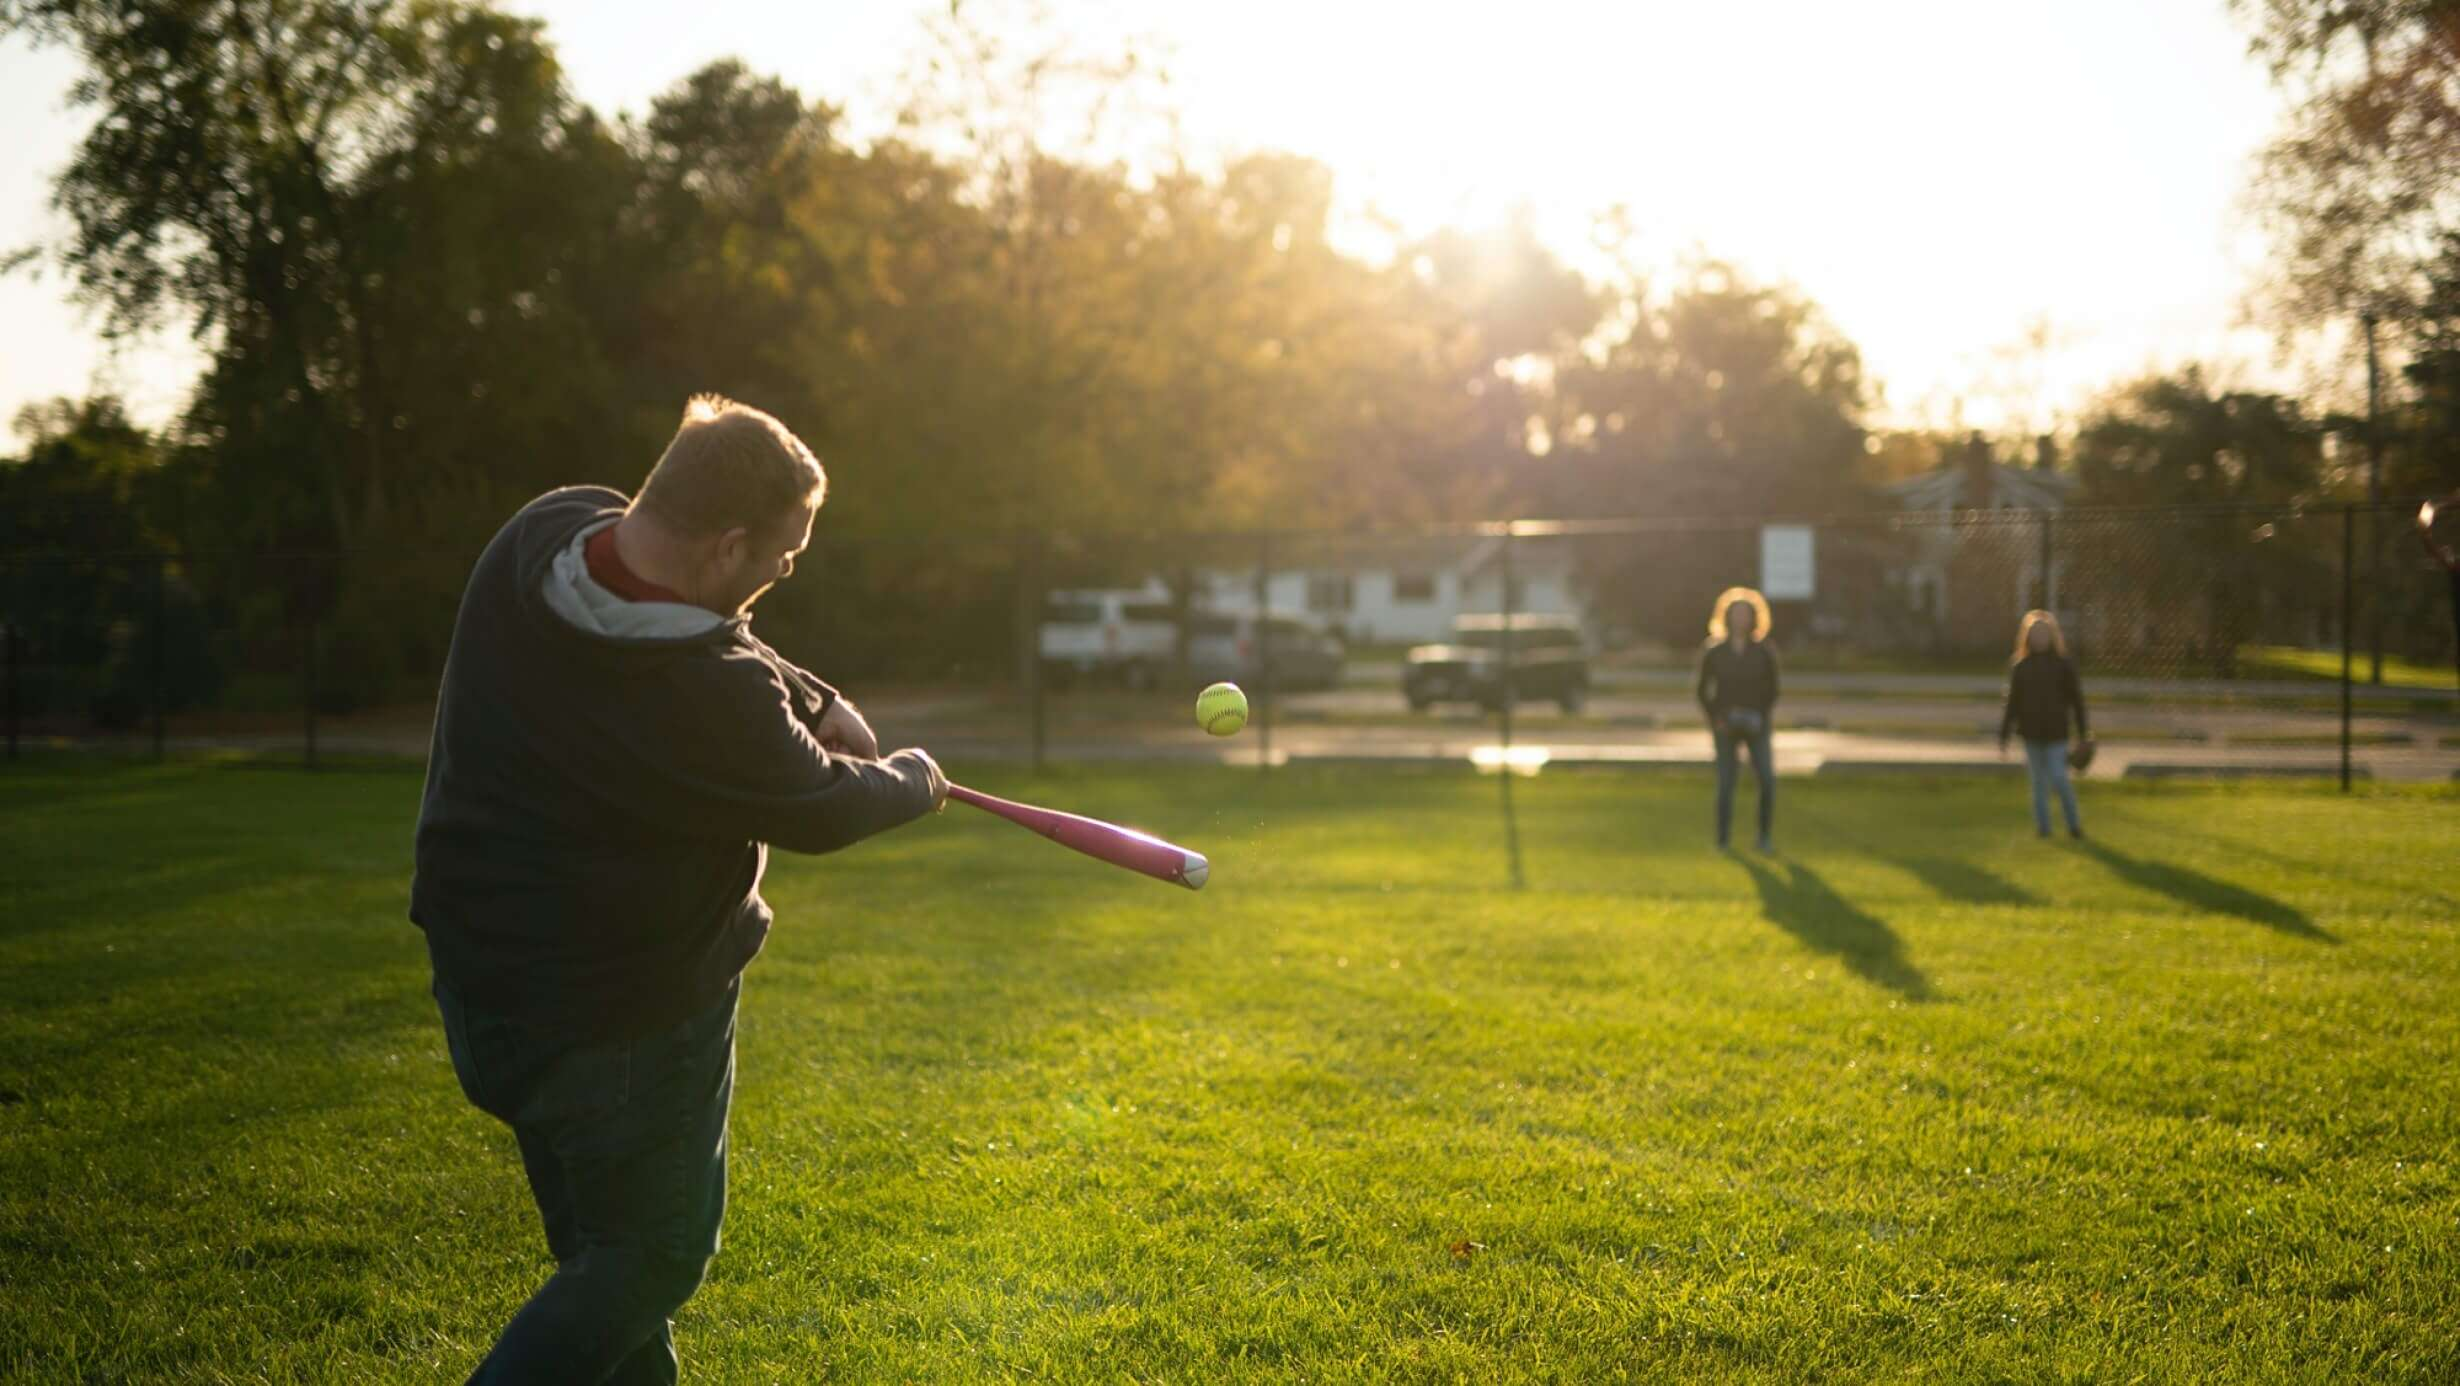 Andy playing softball with his family.